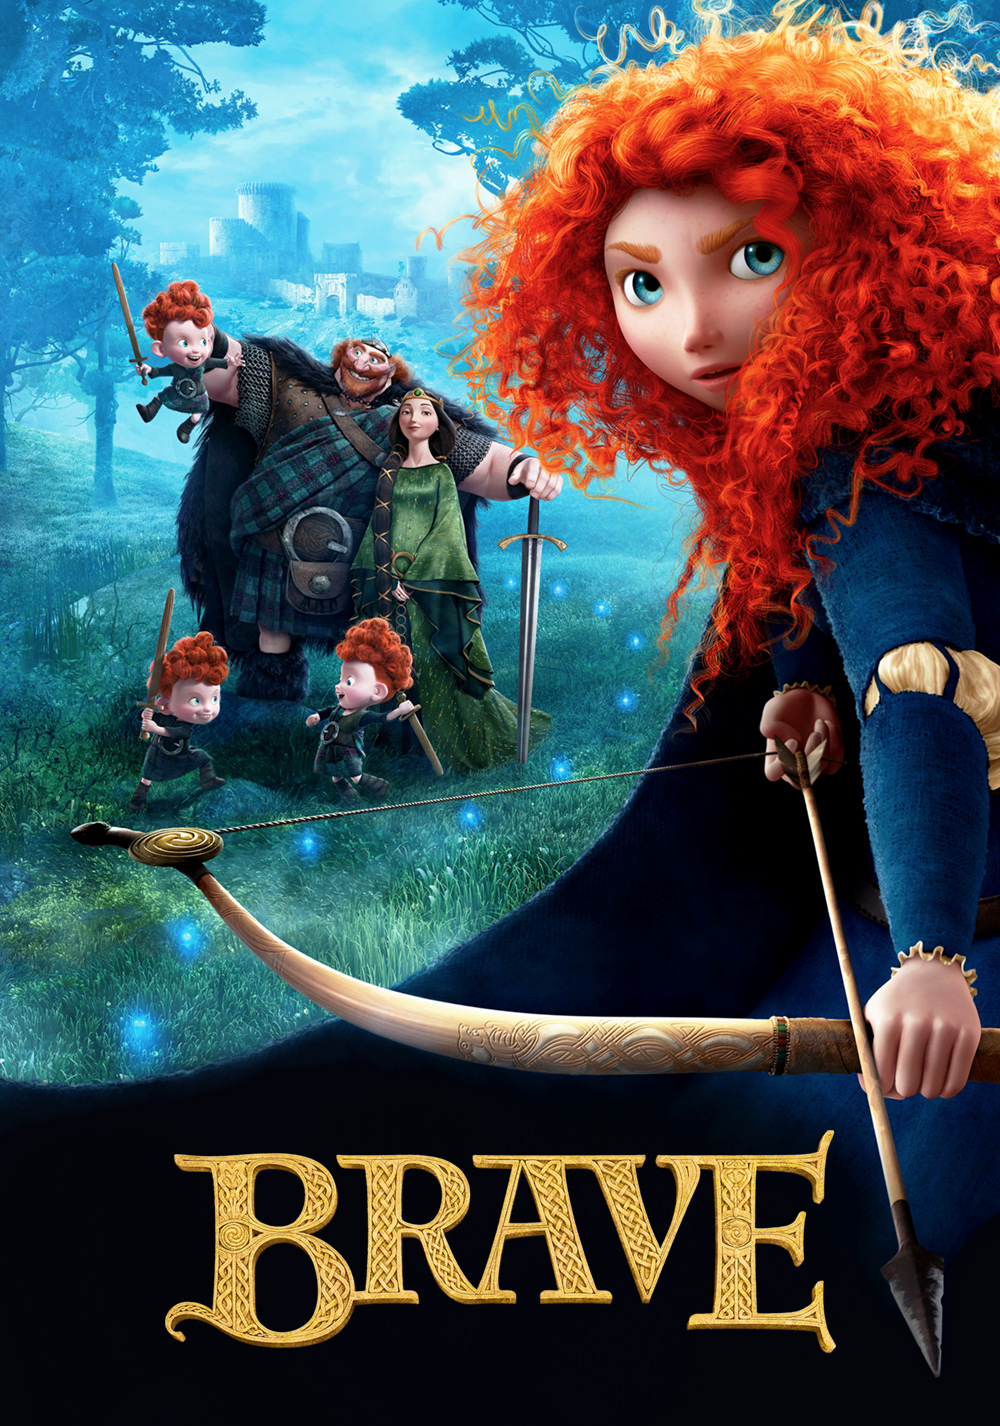 Download Brave (2012) Full Movie in Hindi Dual Audio BluRay 720p [800MB]